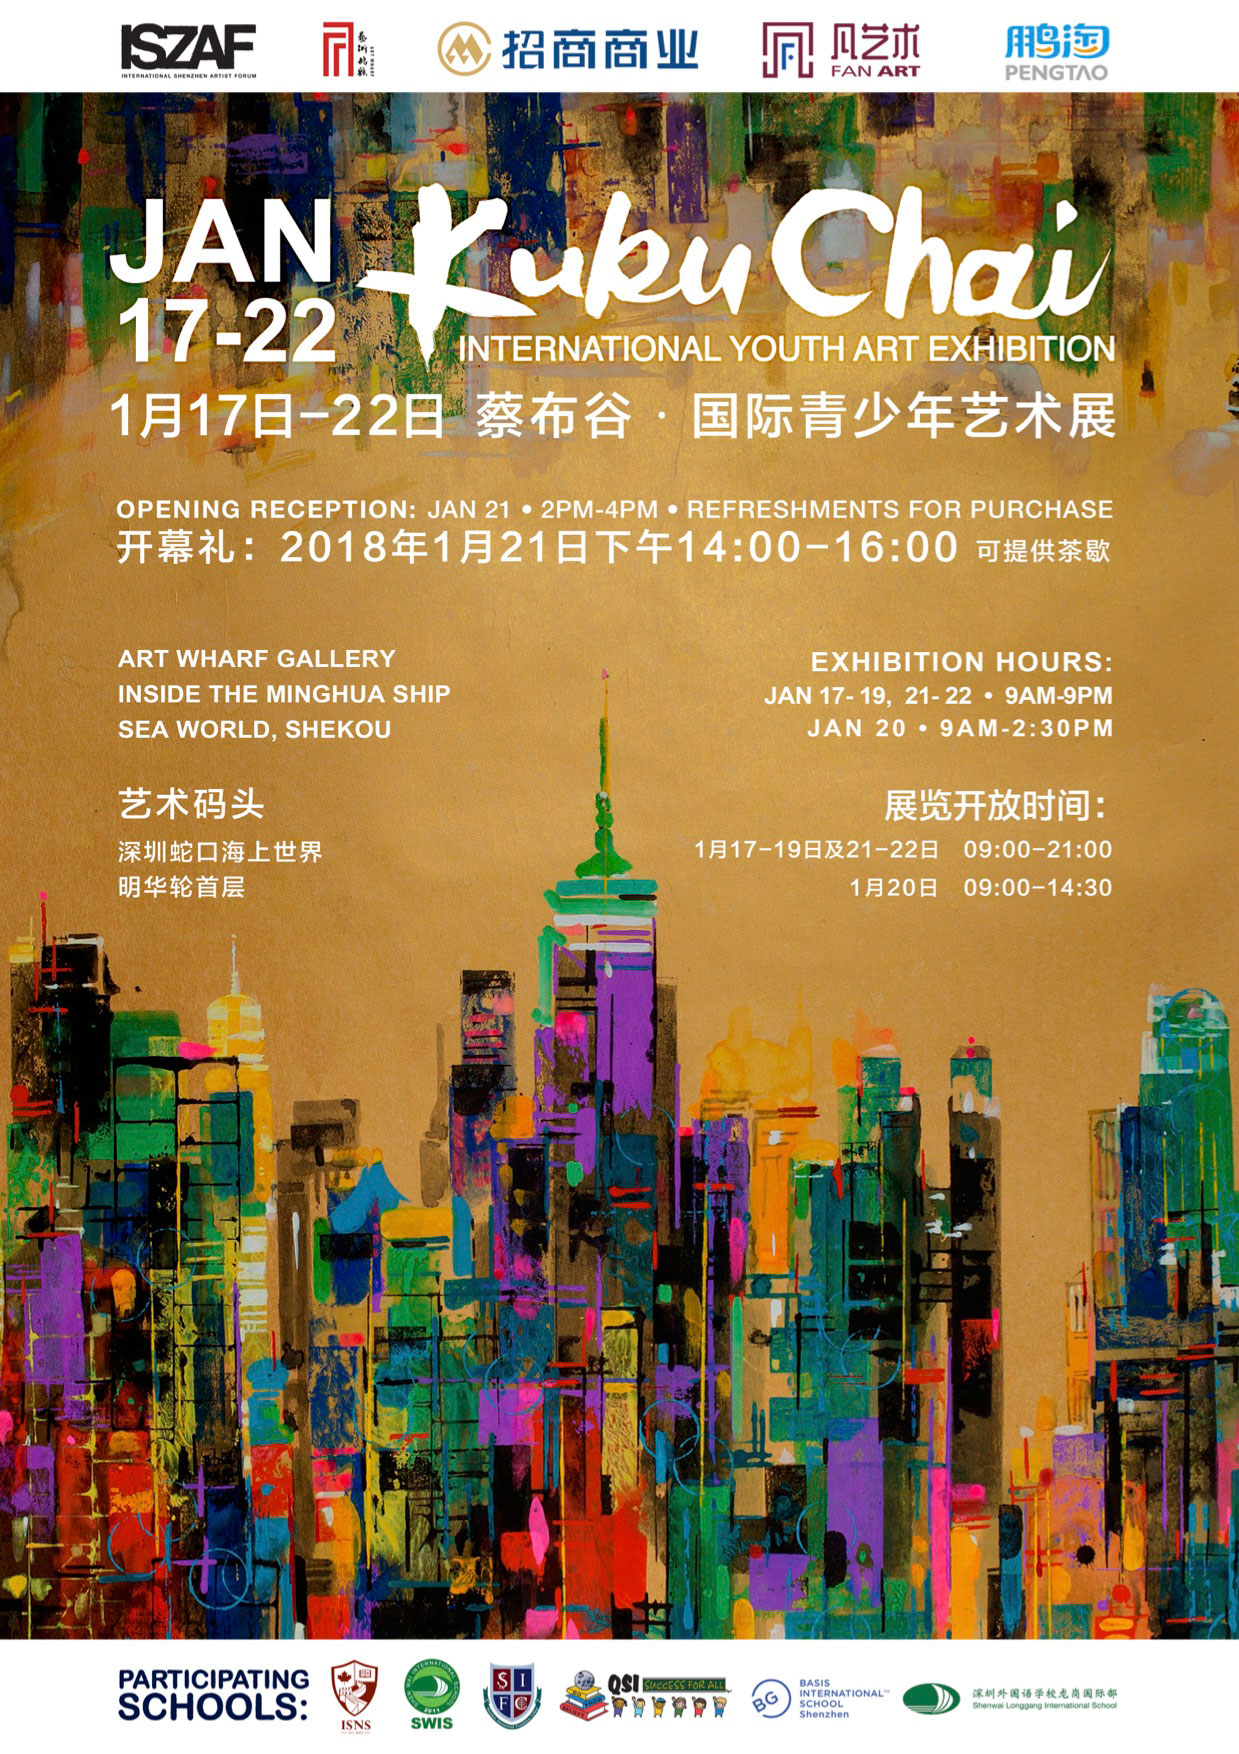 Kuku Chai International Youth Art Exhibition Logo and Poster. 2018.